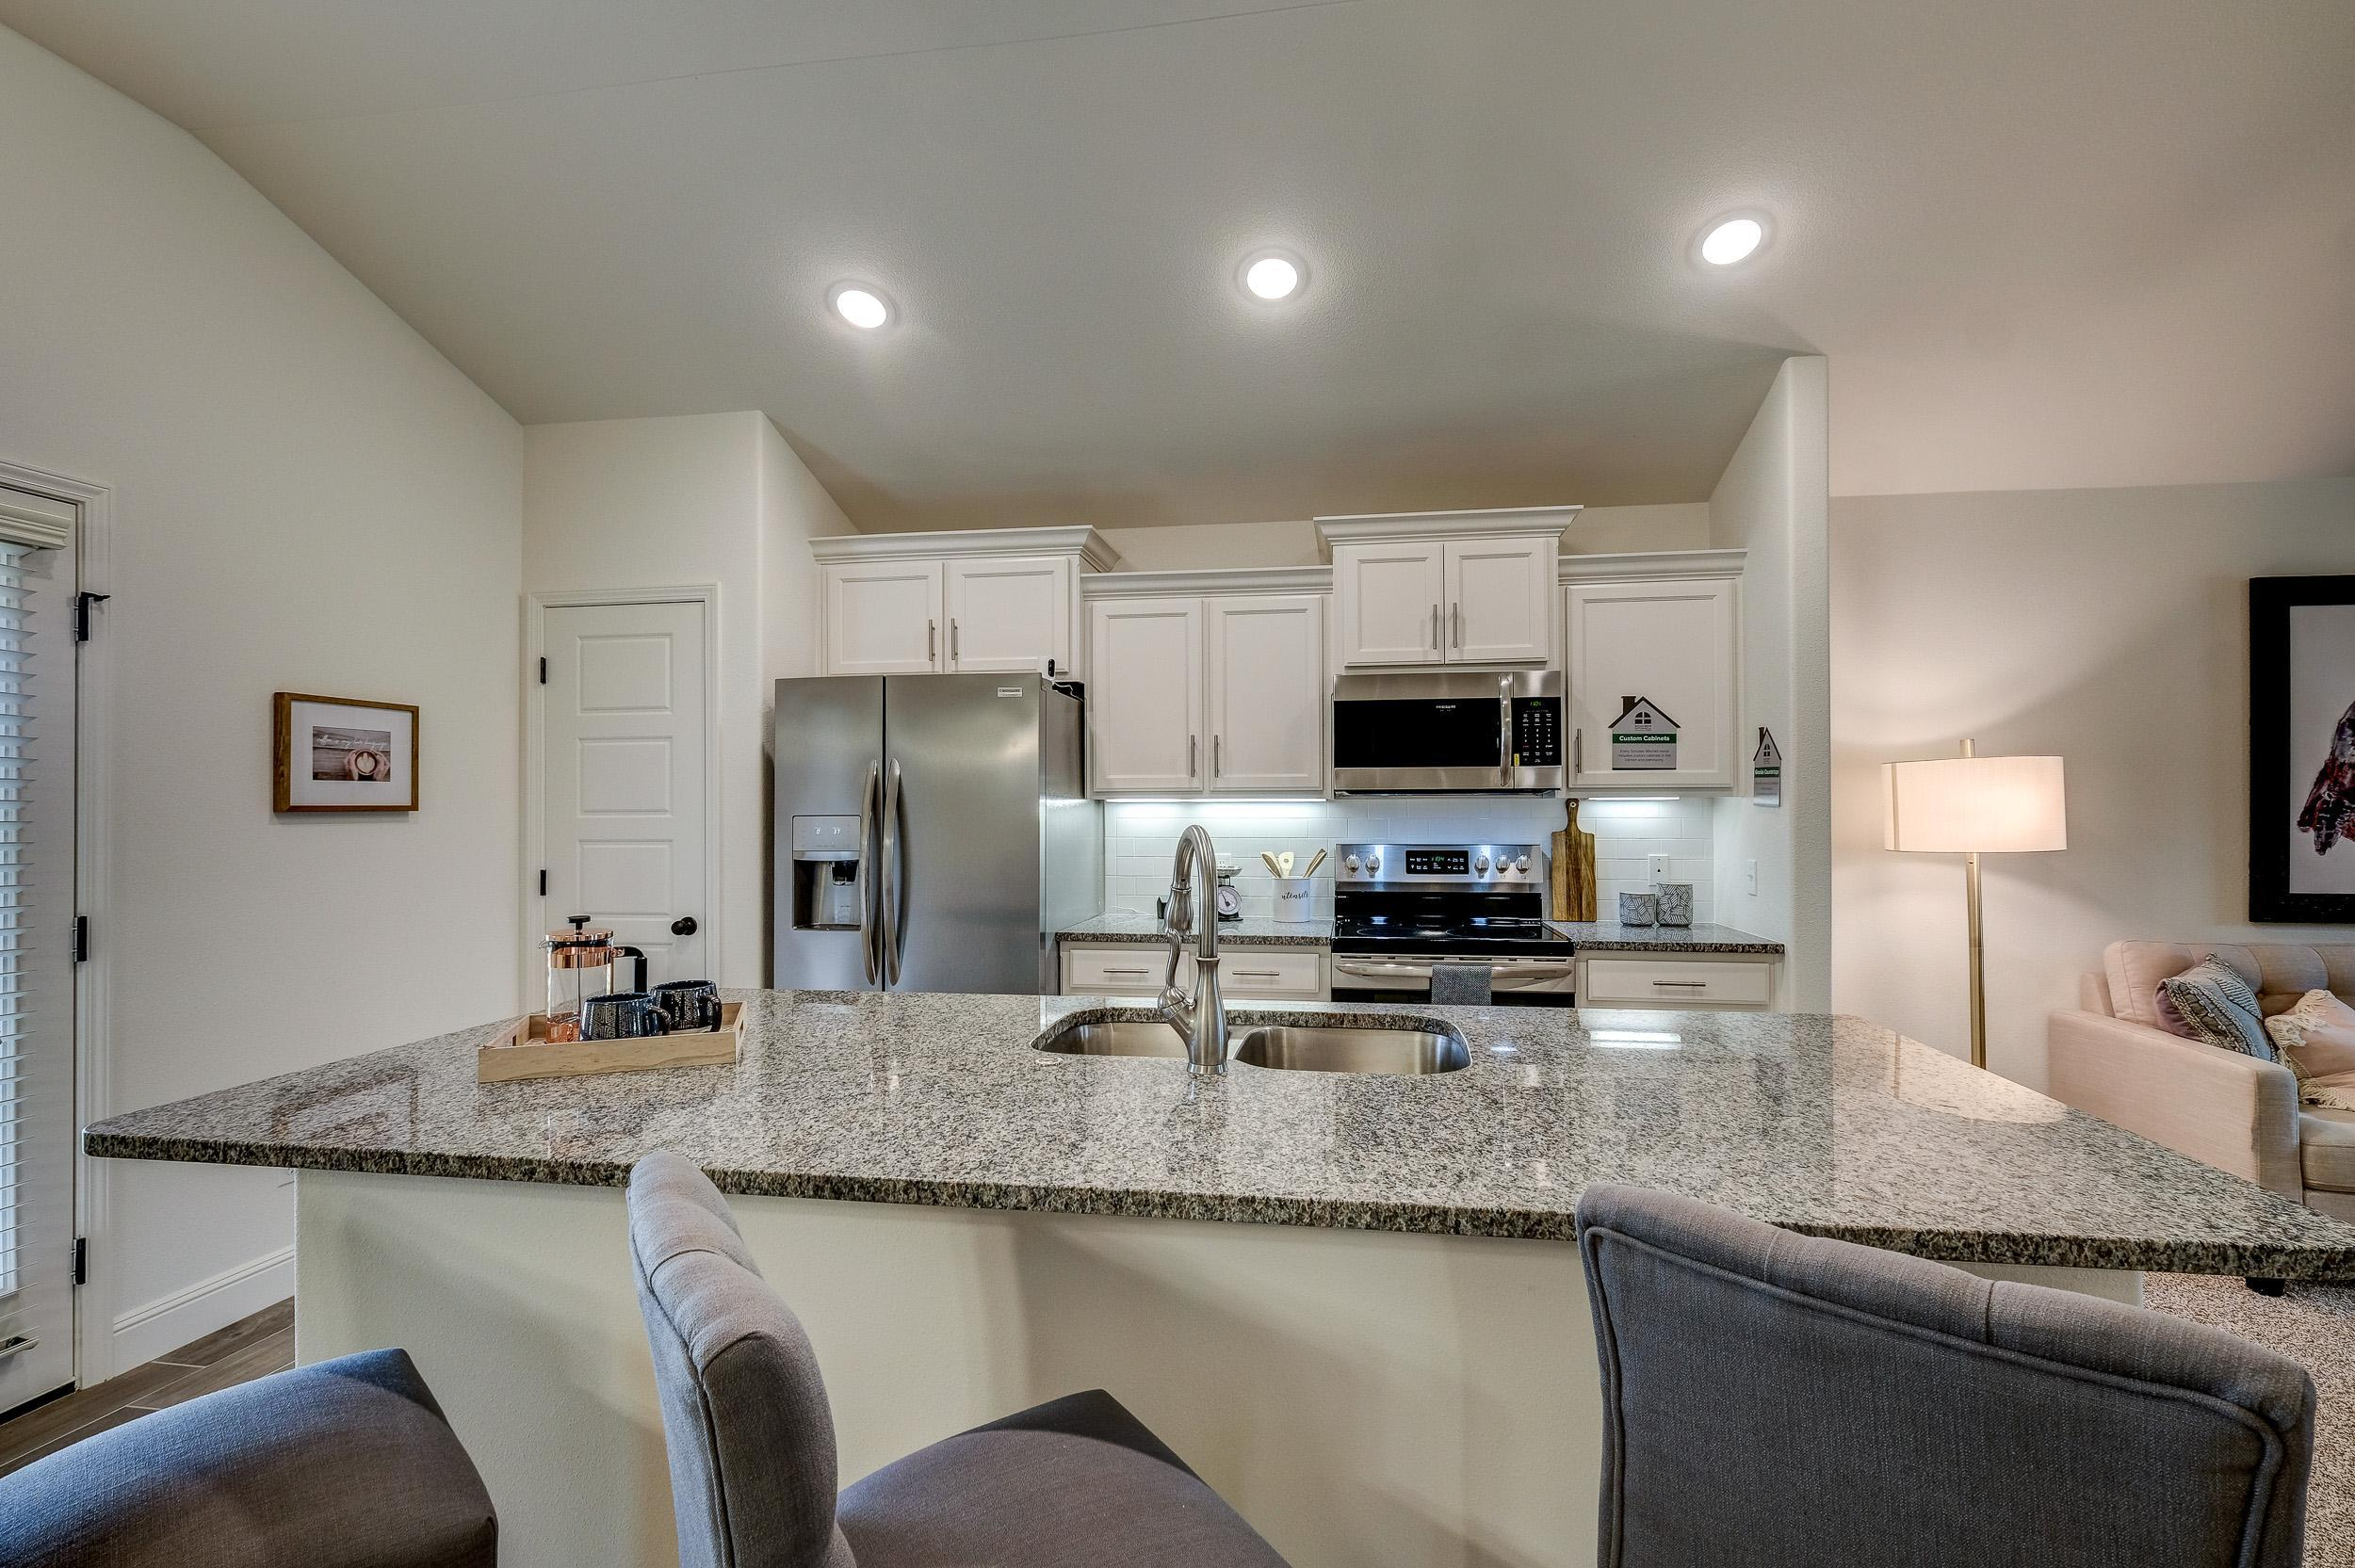 Kitchen featured in the 1450KB Series By Schuber Mitchell Homes in Fayetteville, AR